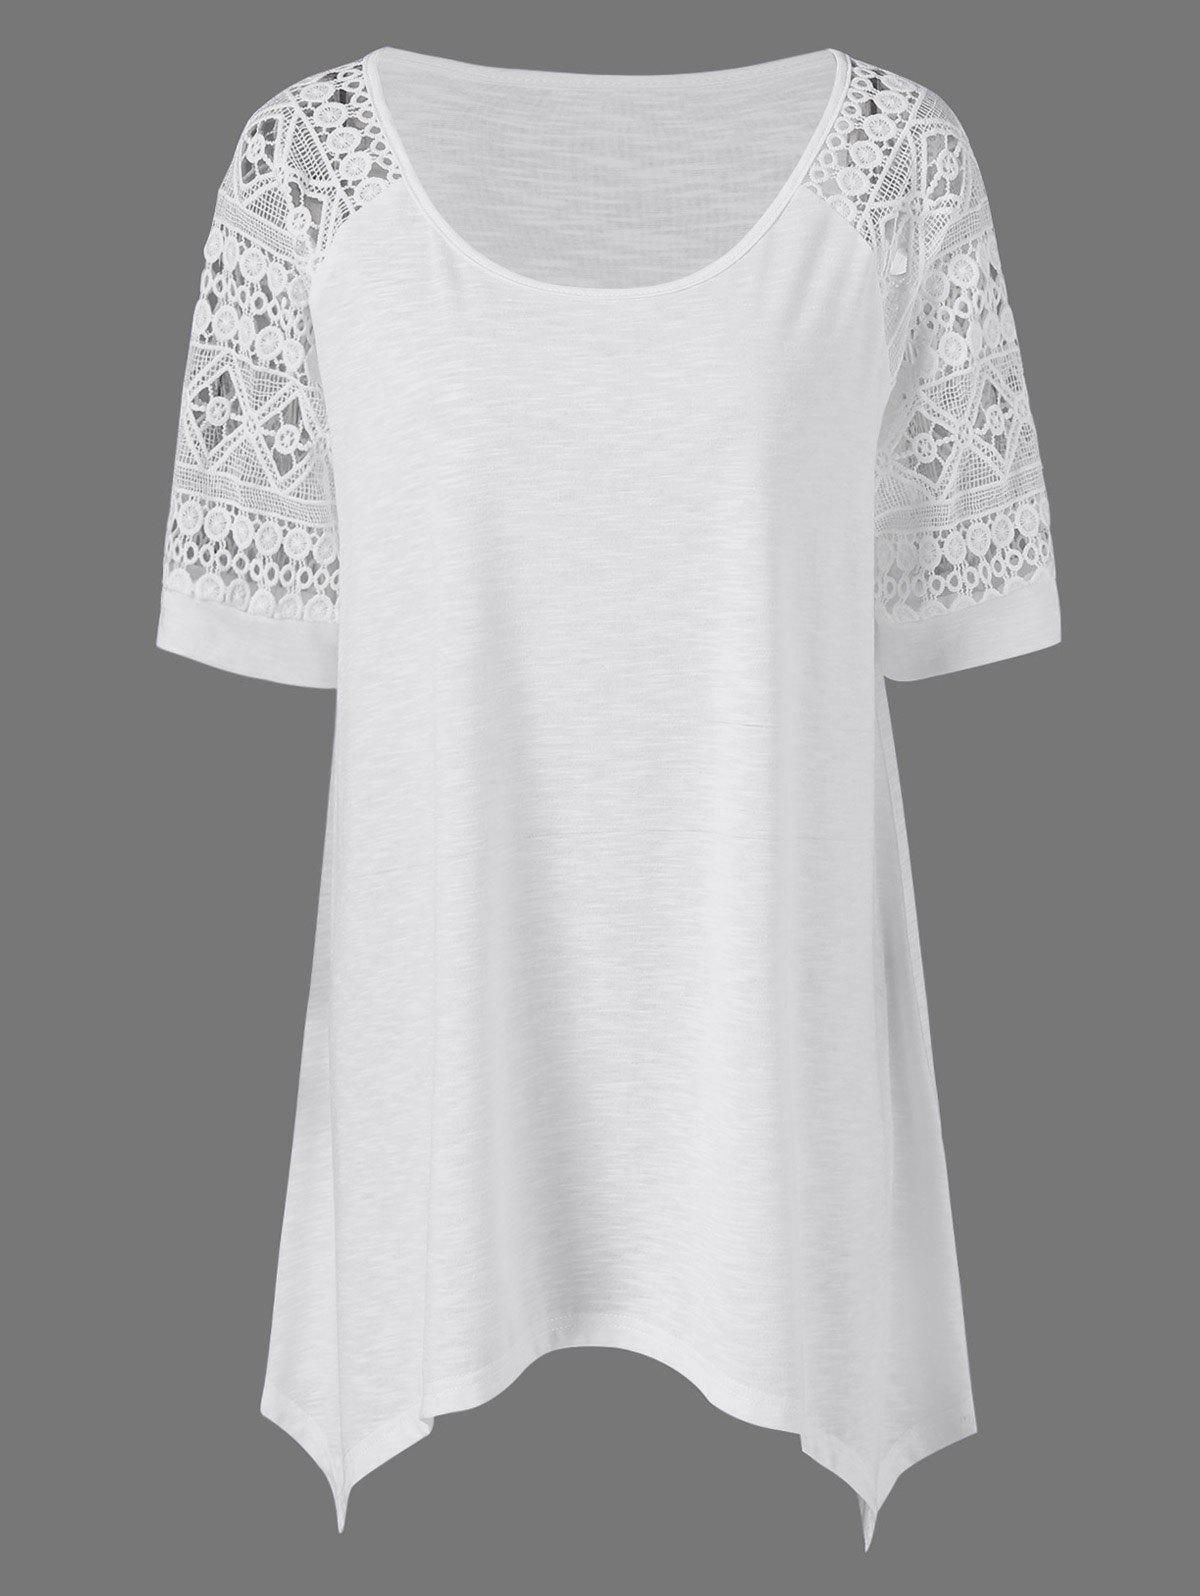 Plus Size Raglan Sleeve Crochet Trim T-Shirt - WHITE 2XL